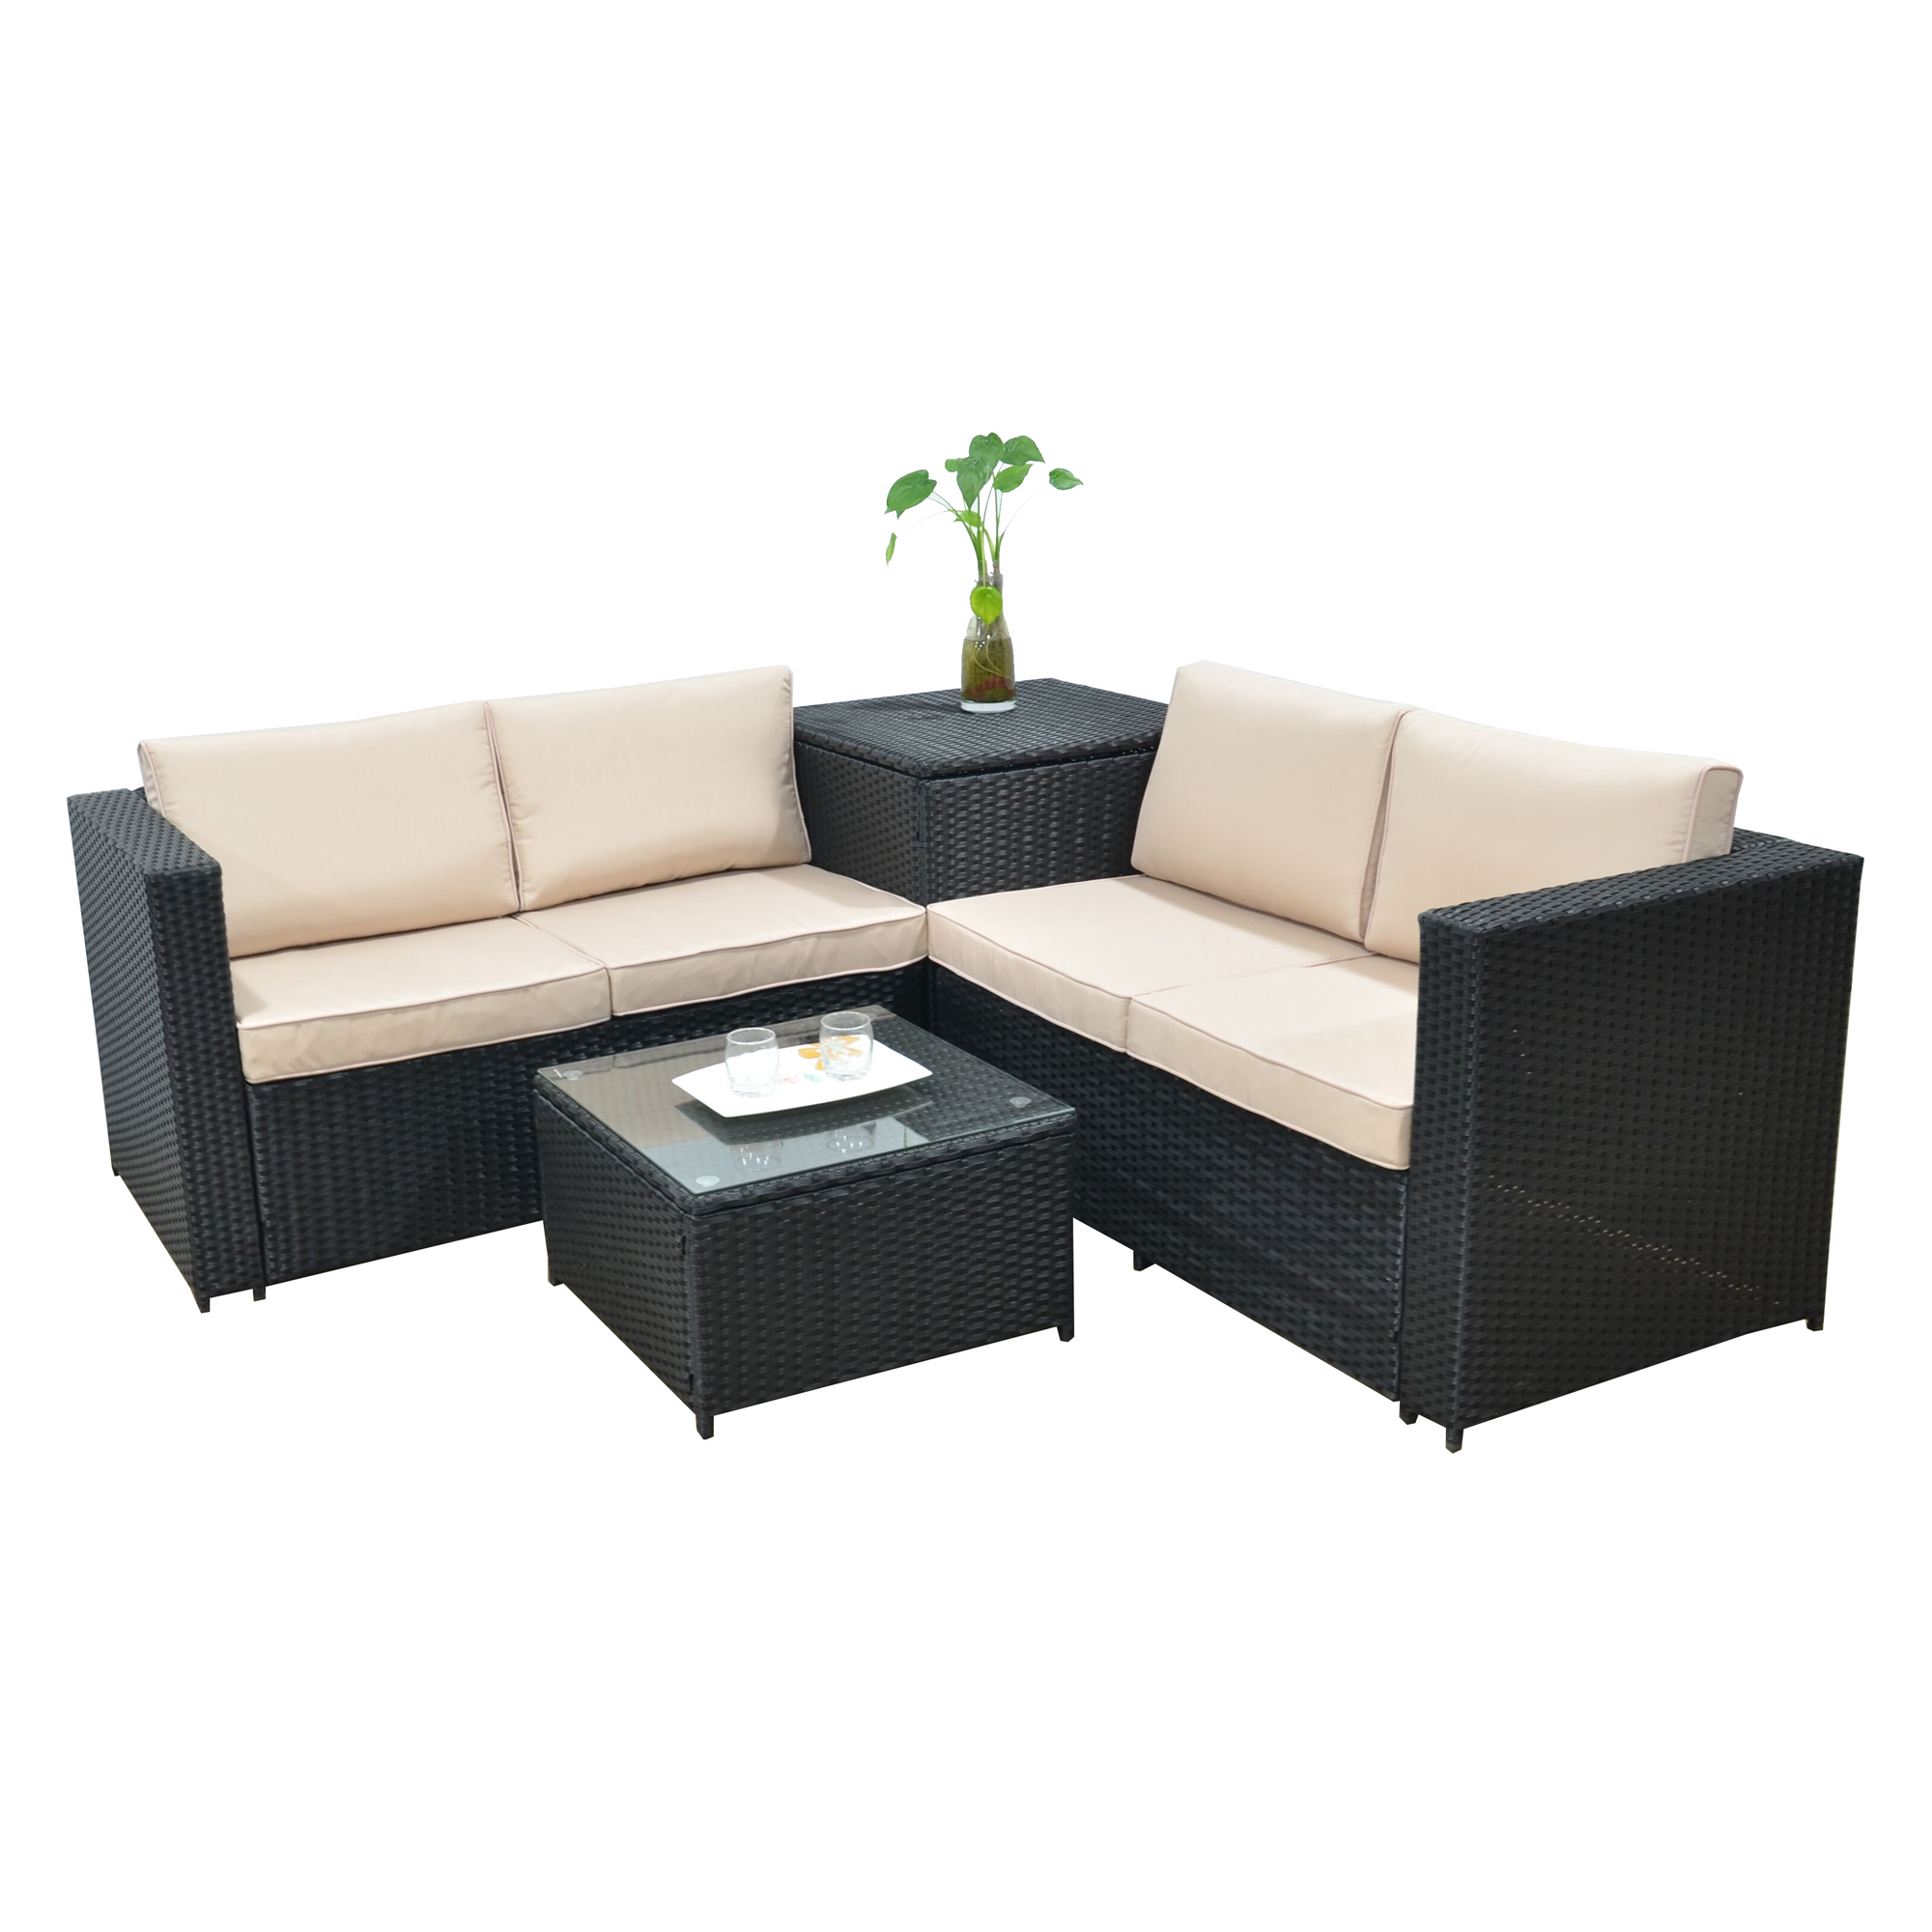 jalano poly rattan lounge sm1 set gartenm bel gartengarnitur anthrazit. Black Bedroom Furniture Sets. Home Design Ideas